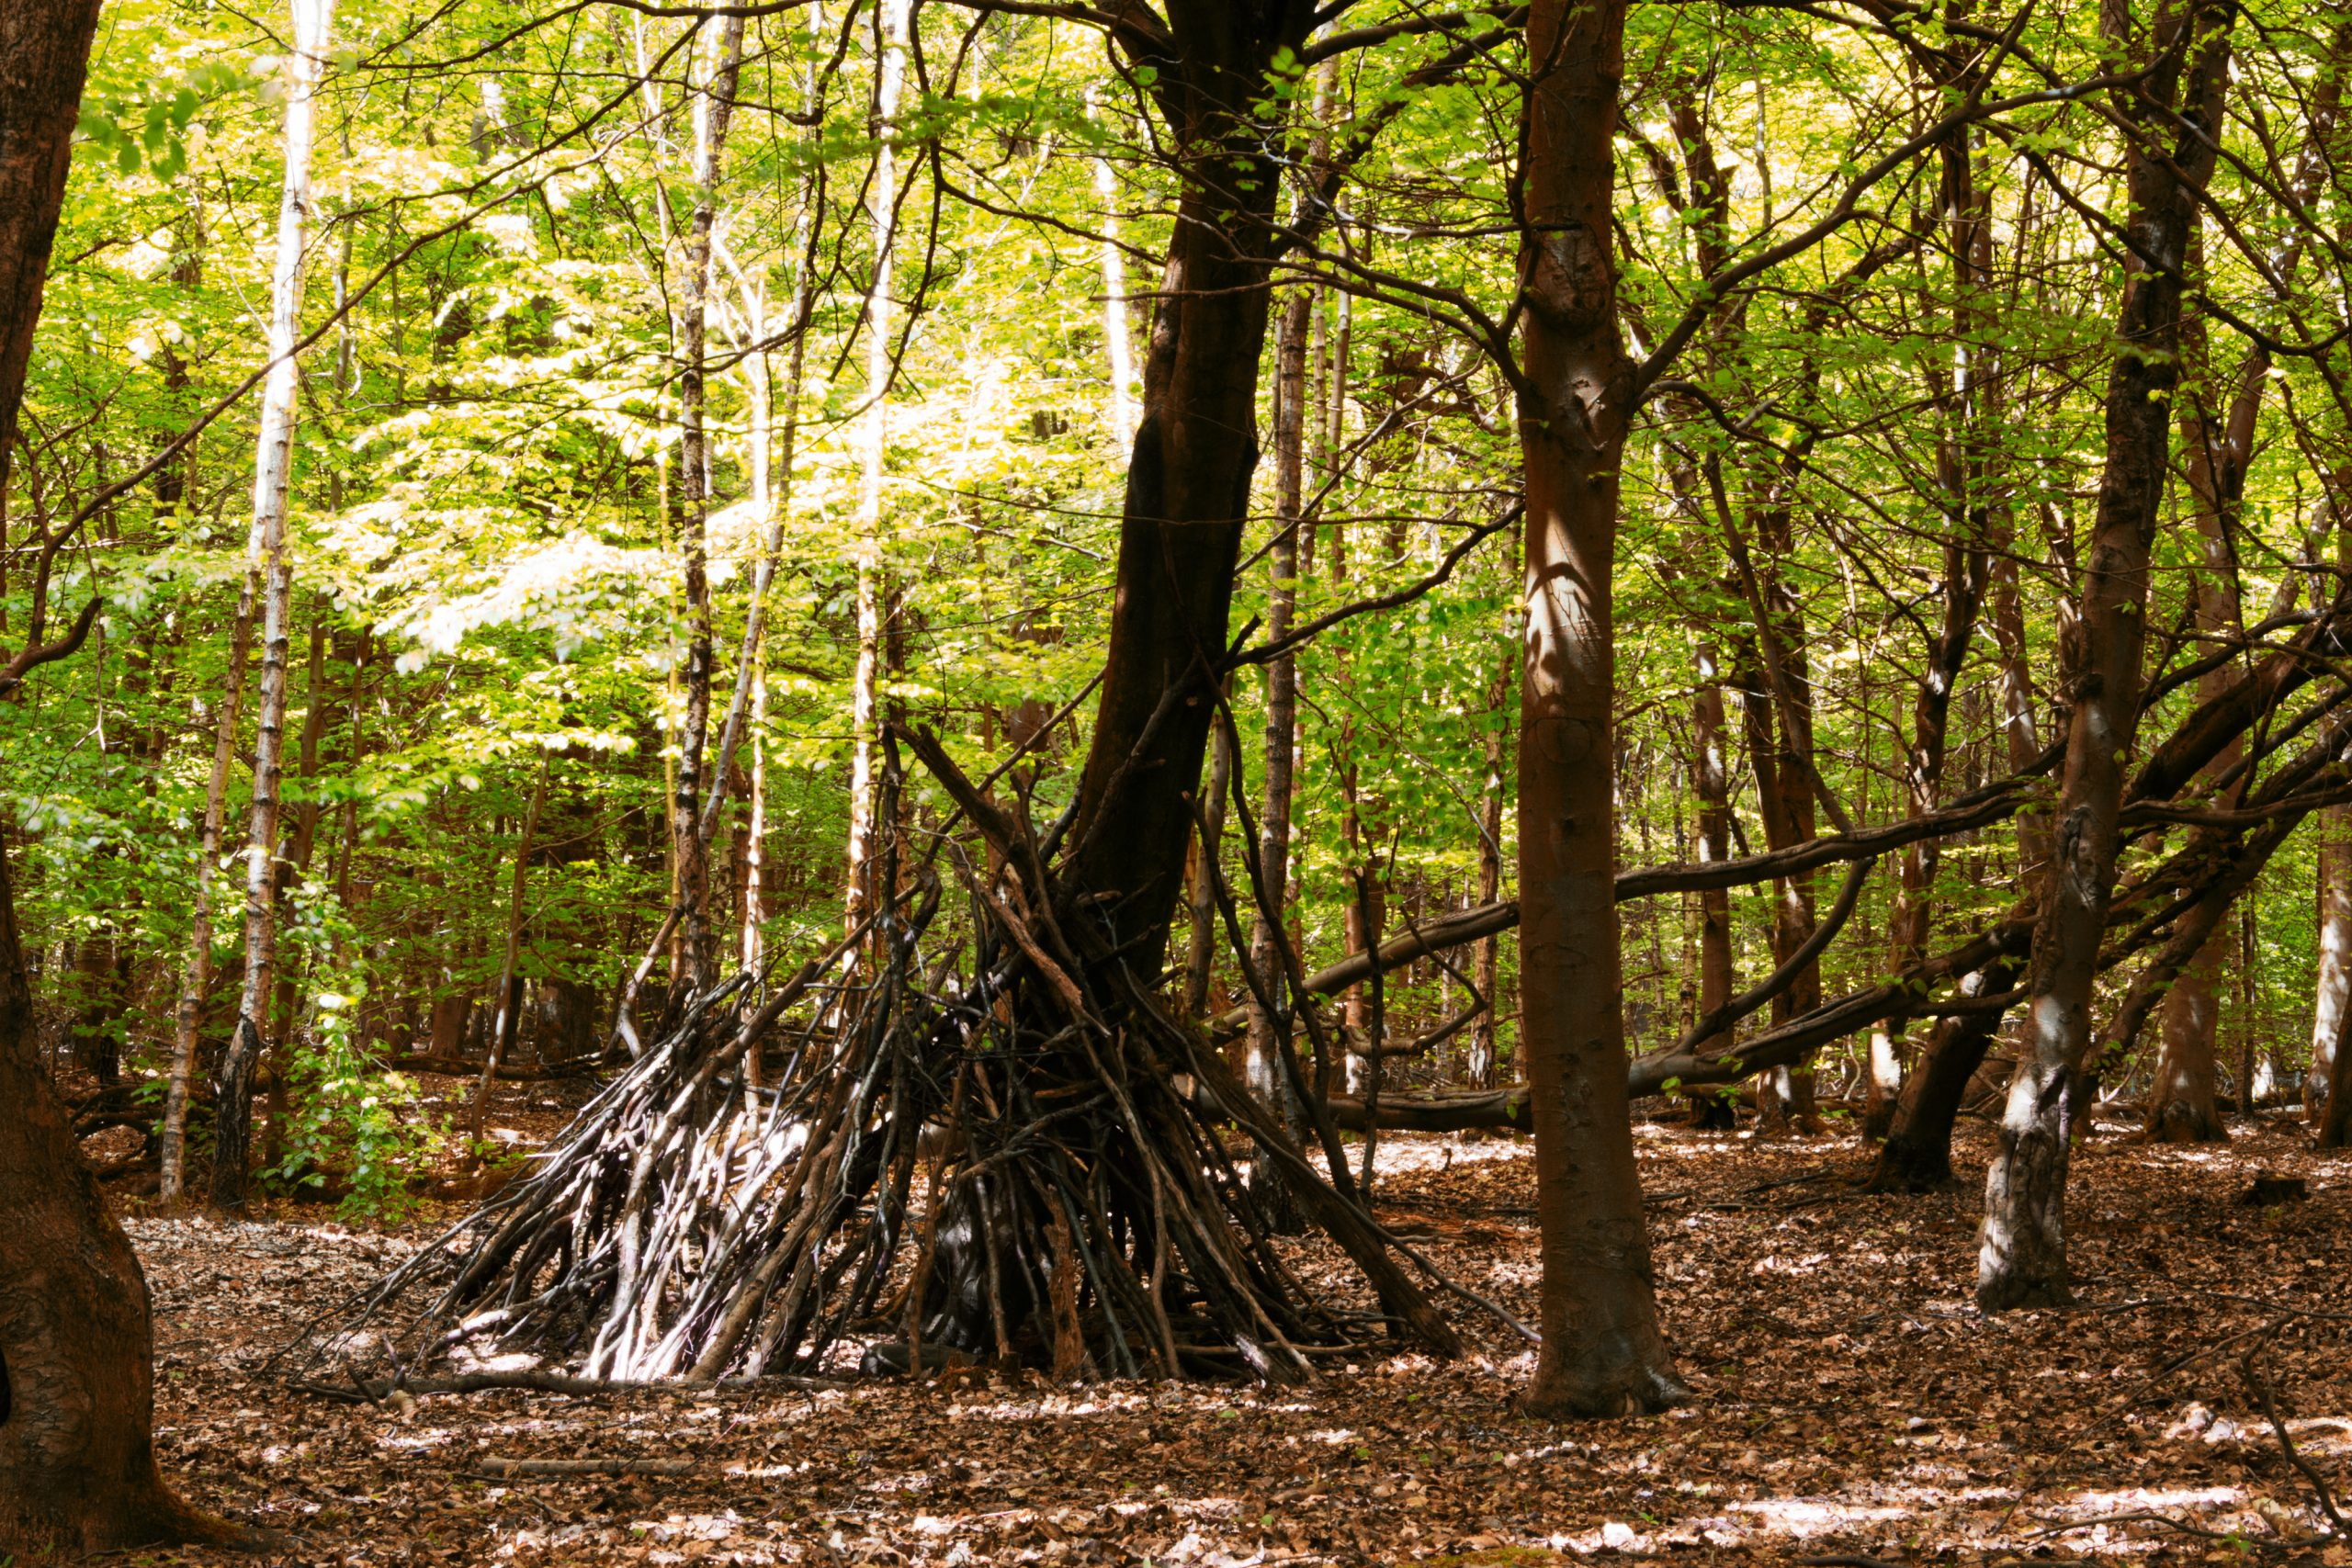 Building a lean-to shelter out of branches in the woods